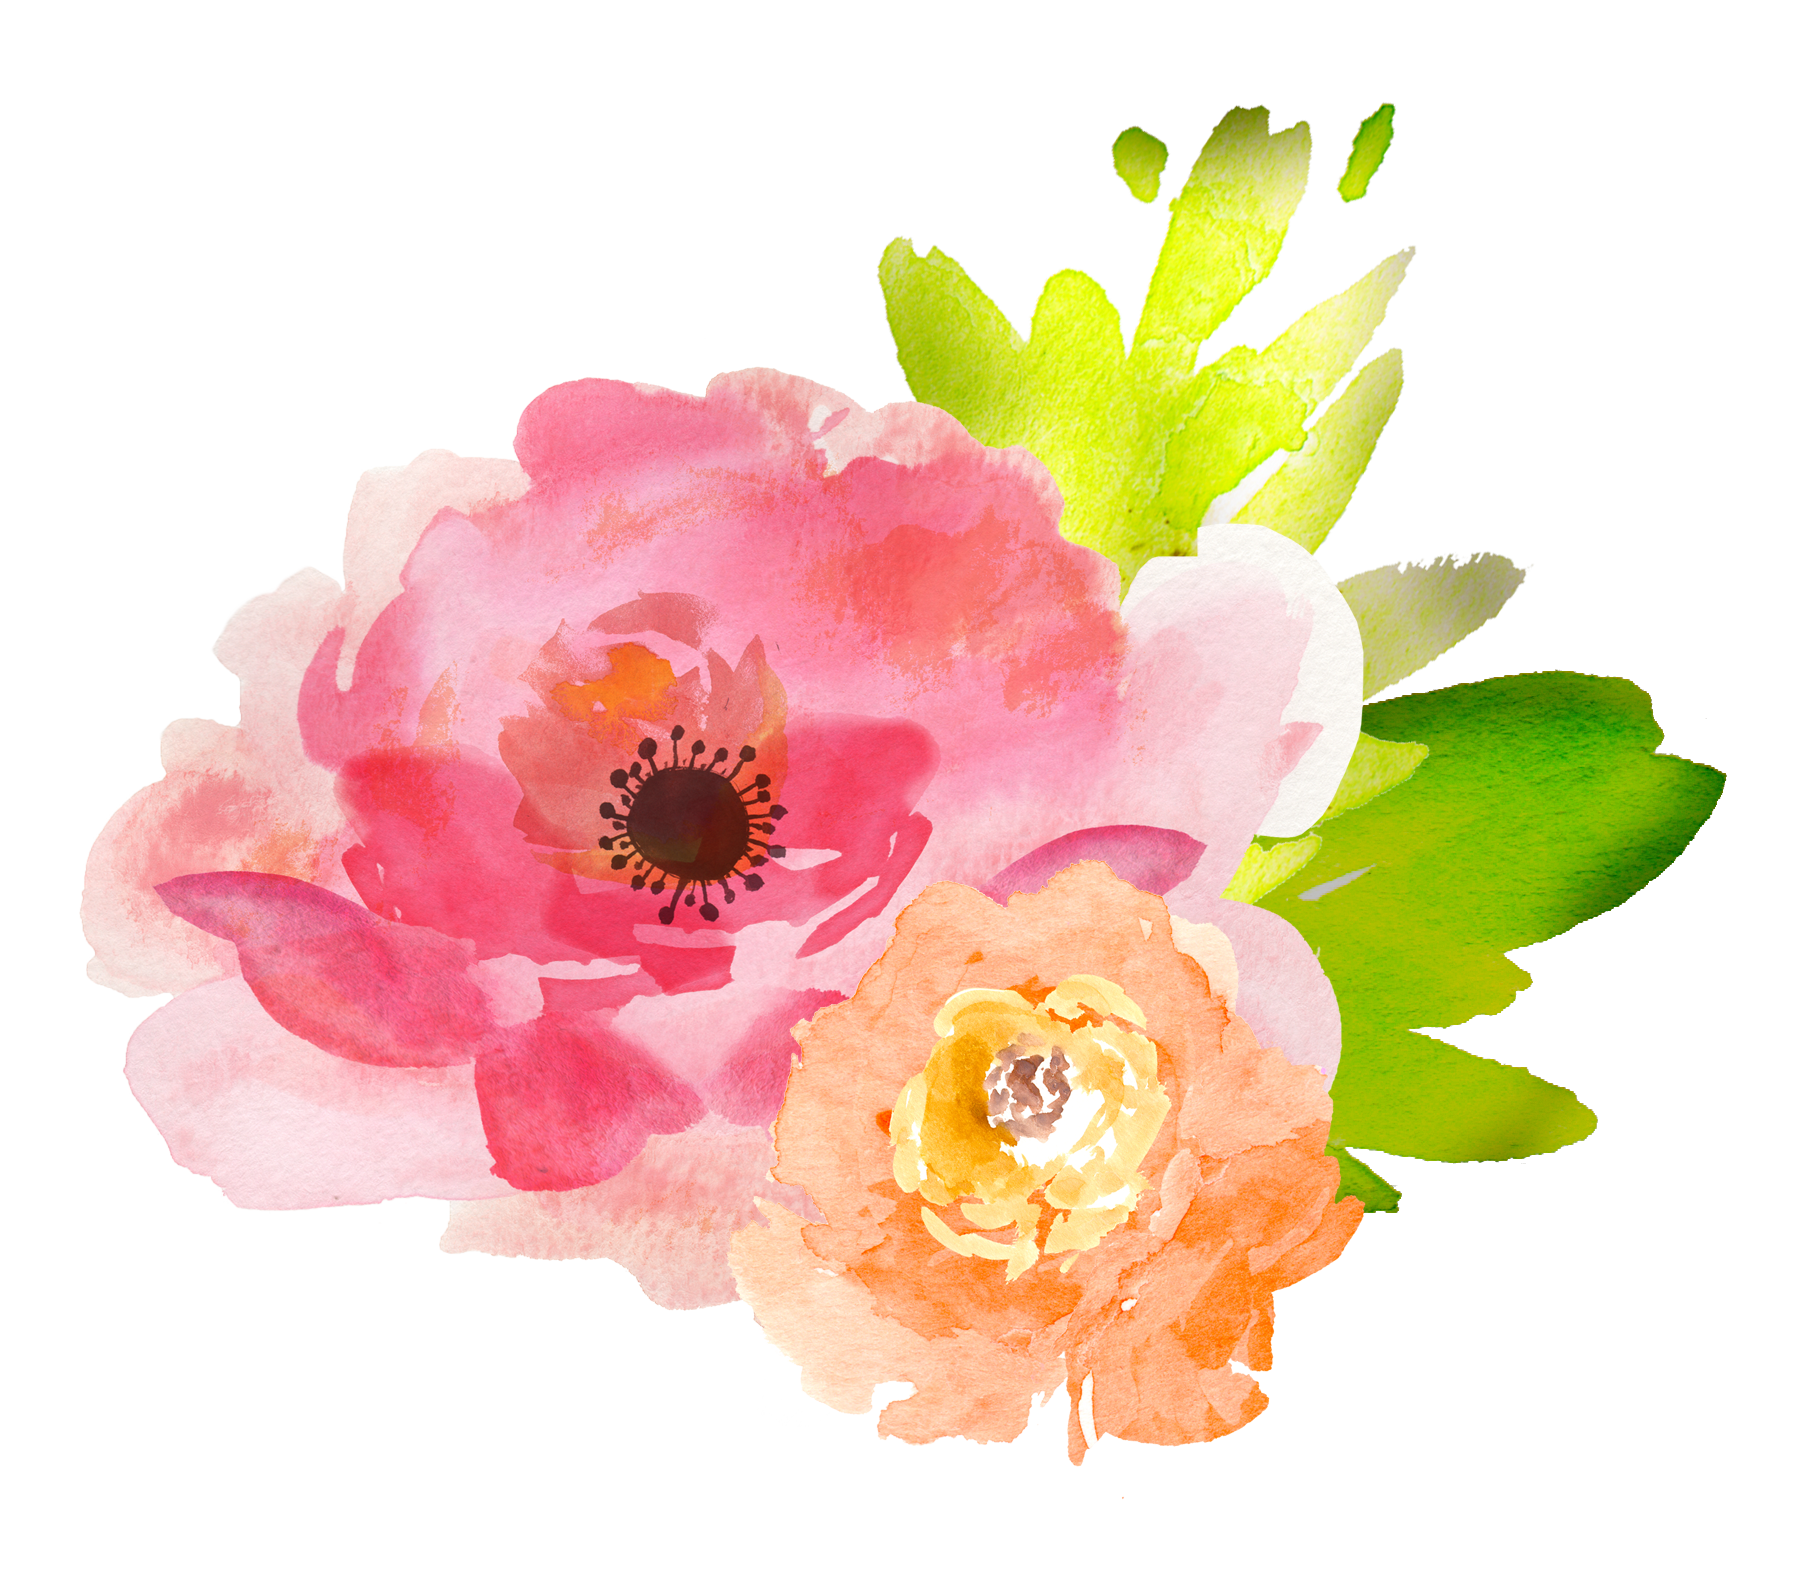 Free watercolor png. Floral elements pretty things